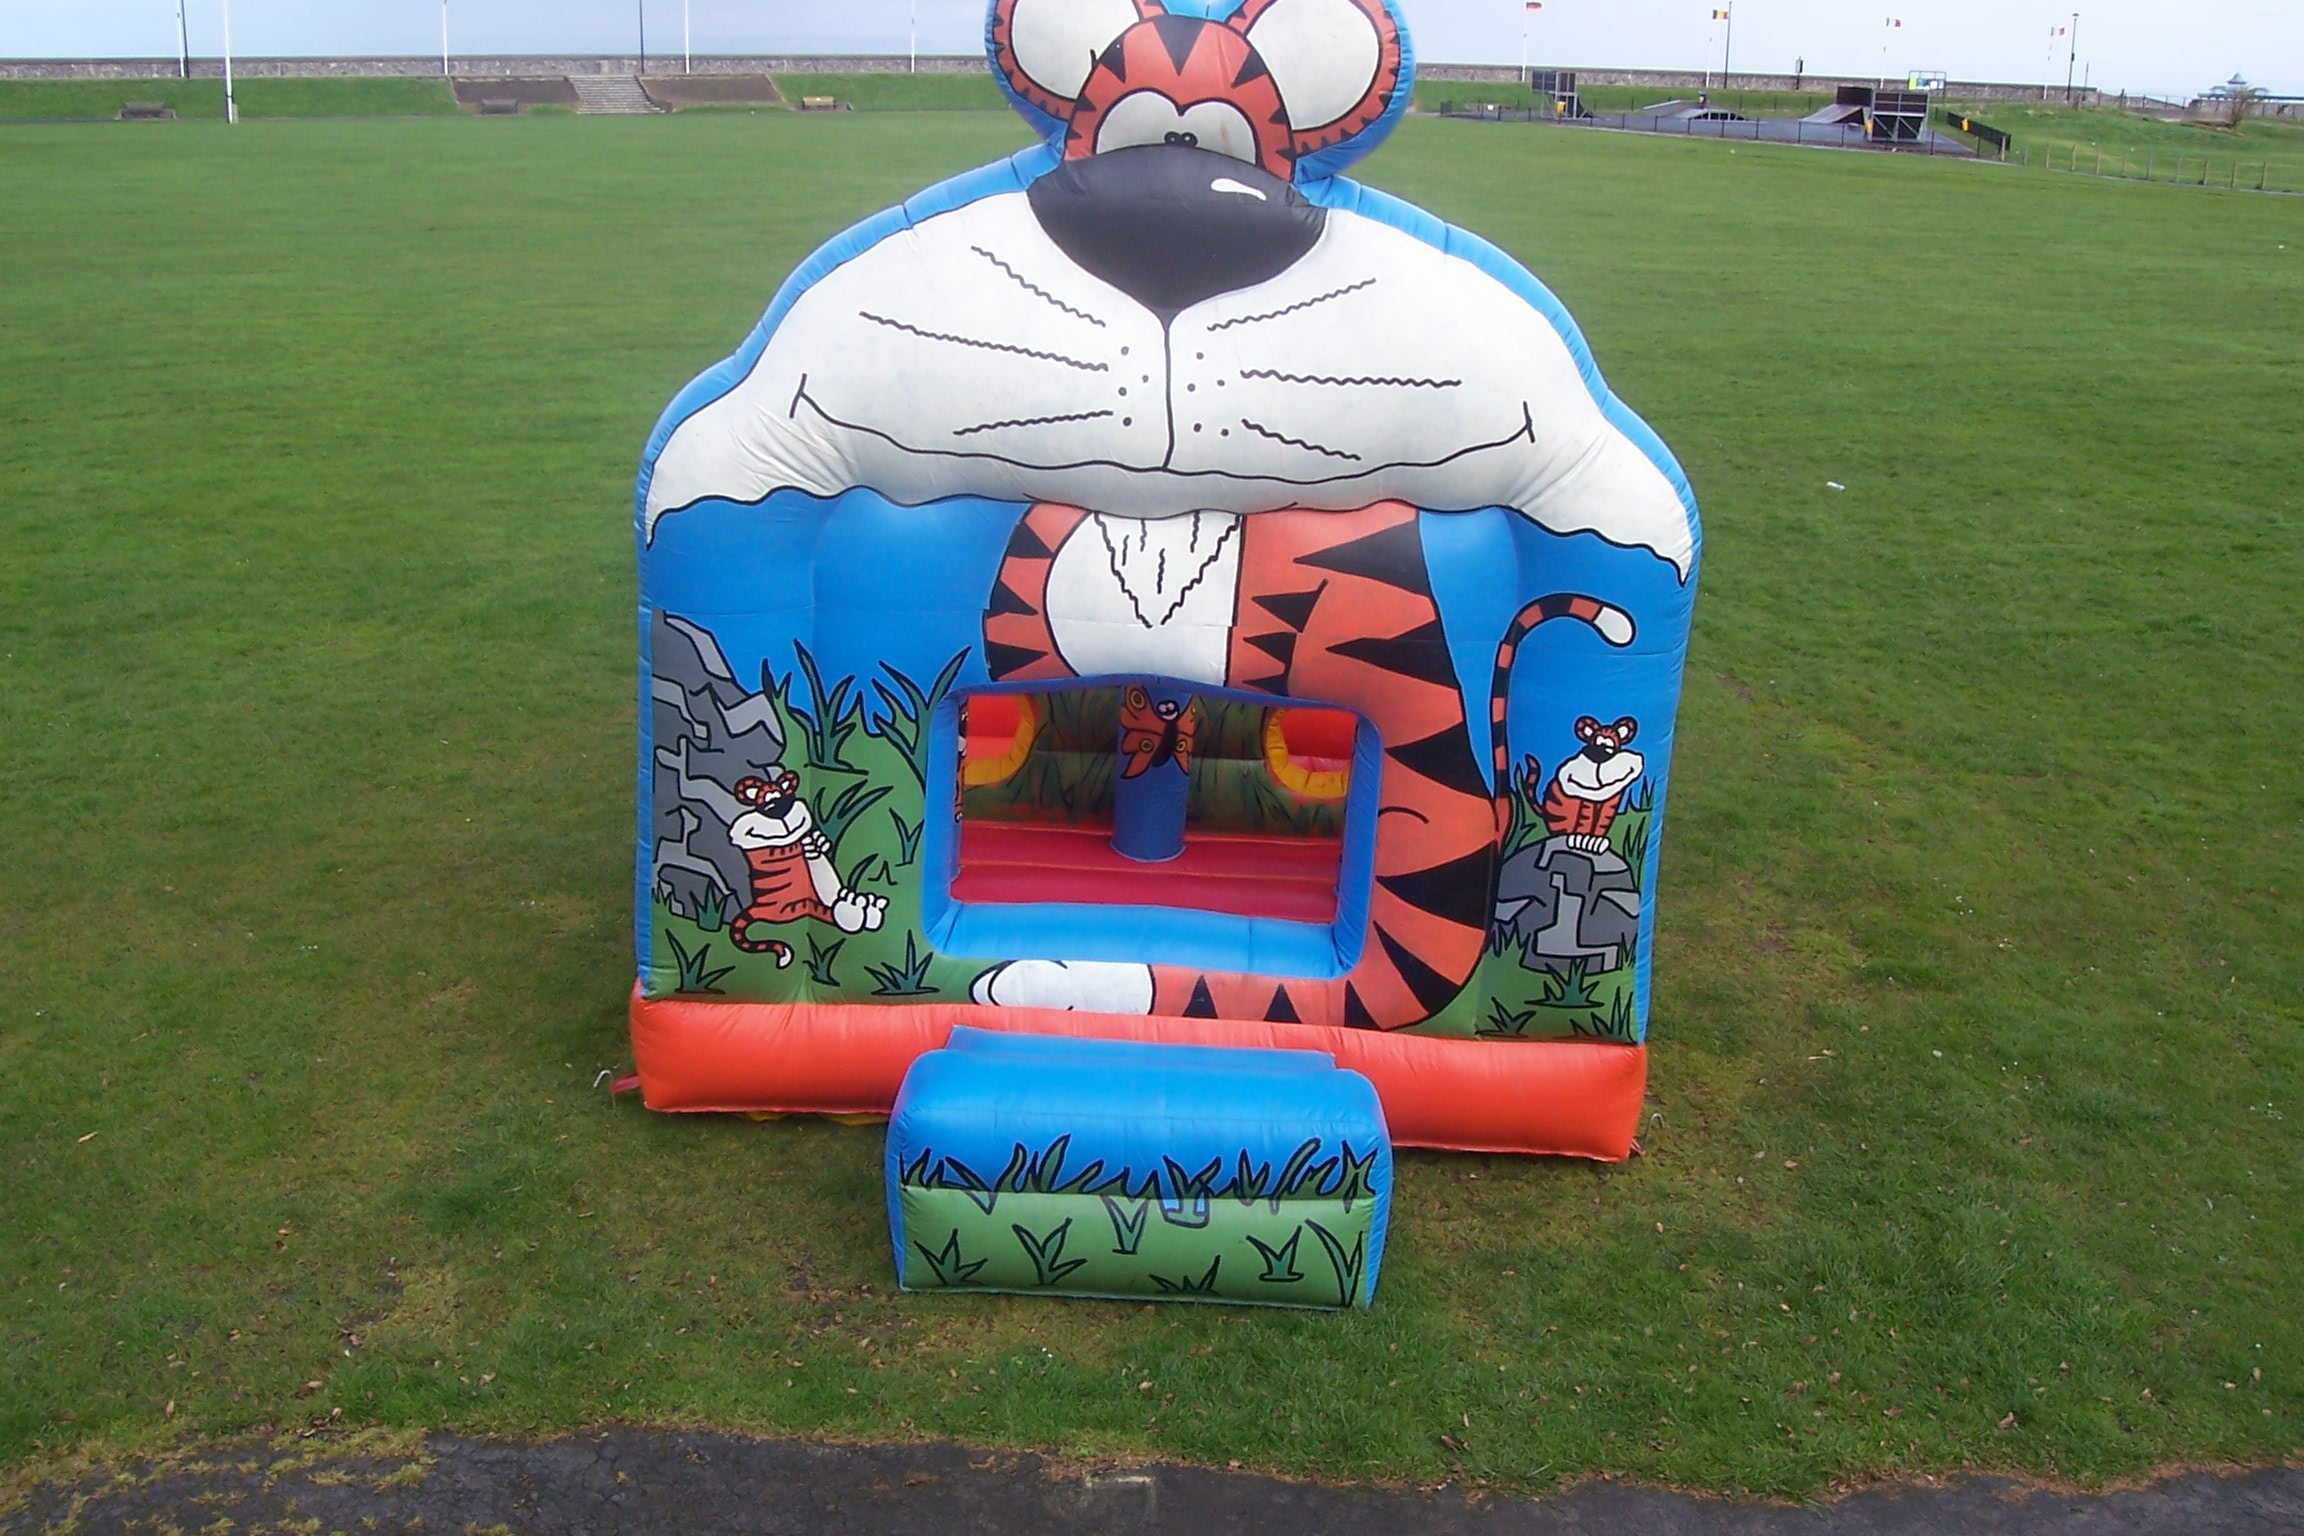 Our Tiger Ball Pit is a smaller bouncy castle similar to our Jungle Activity. With obstacles and tunnels to climb through and a ball pit to play in, the younger ones are sure to enjoy bouncing for hours! Suitable for children up to 7 years.